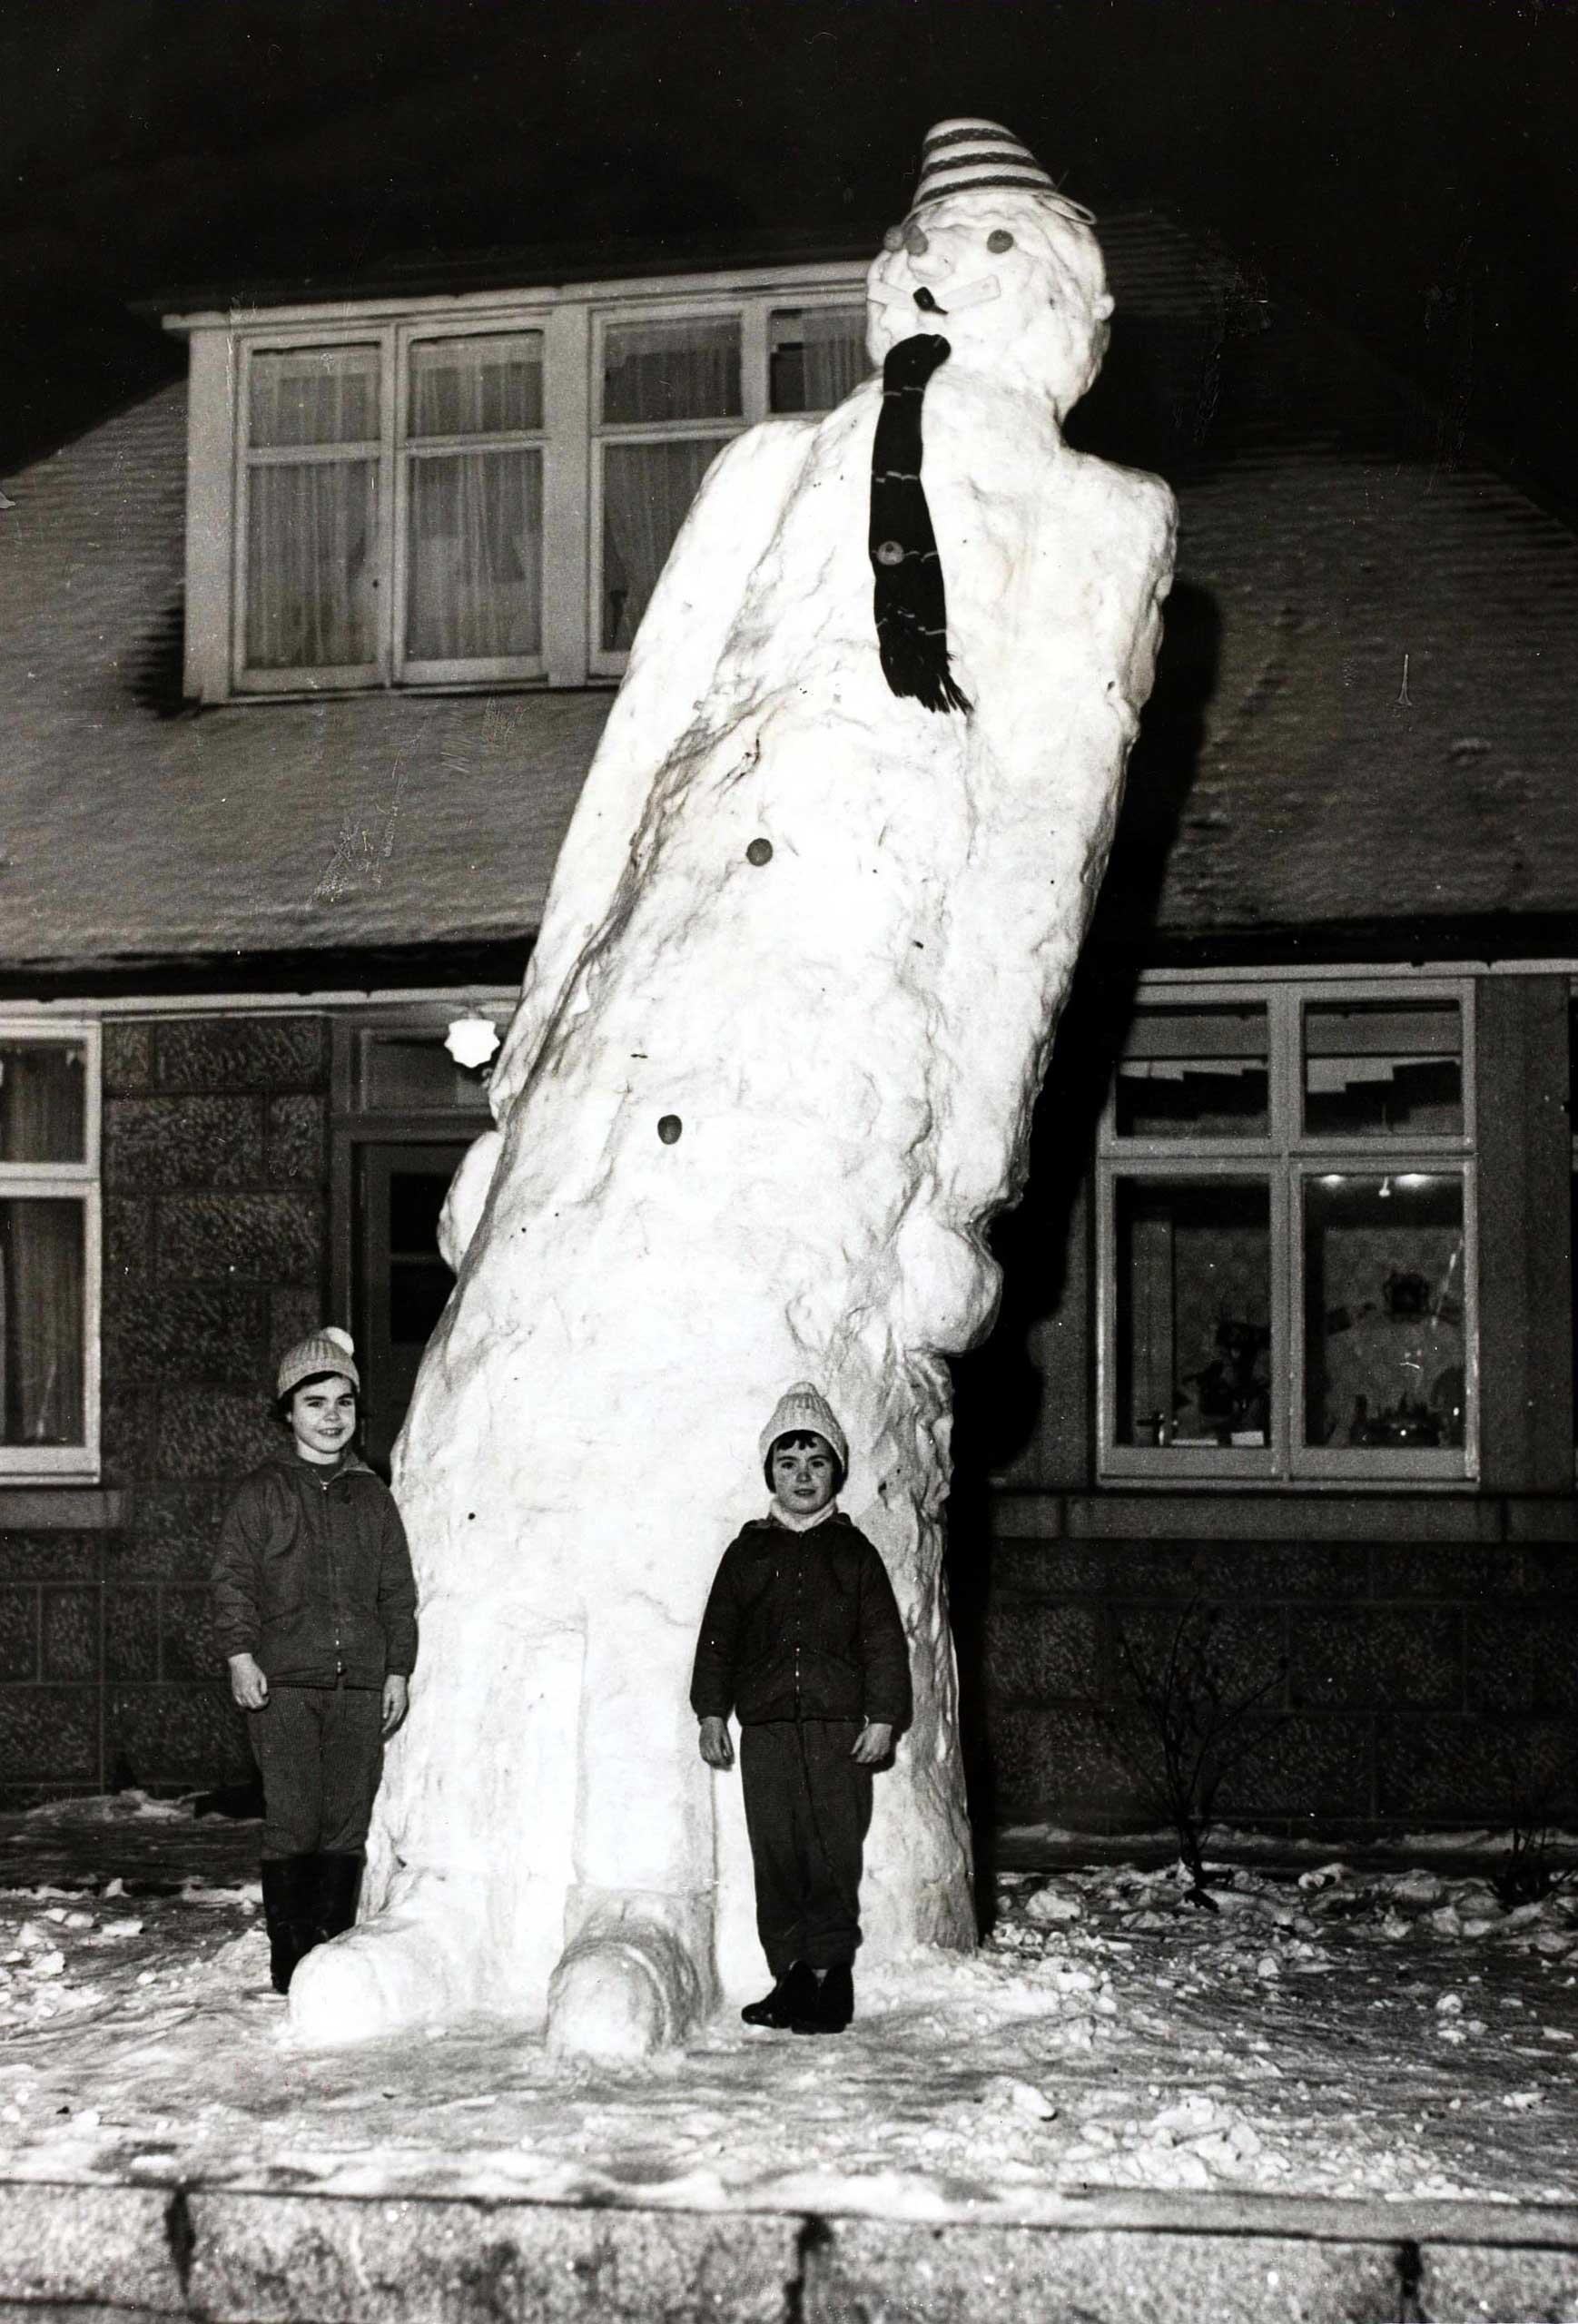 A giant, snowman measuring 17 ft., made by two girls in Aberdeen, Scotland, Jan. 3, 1963.